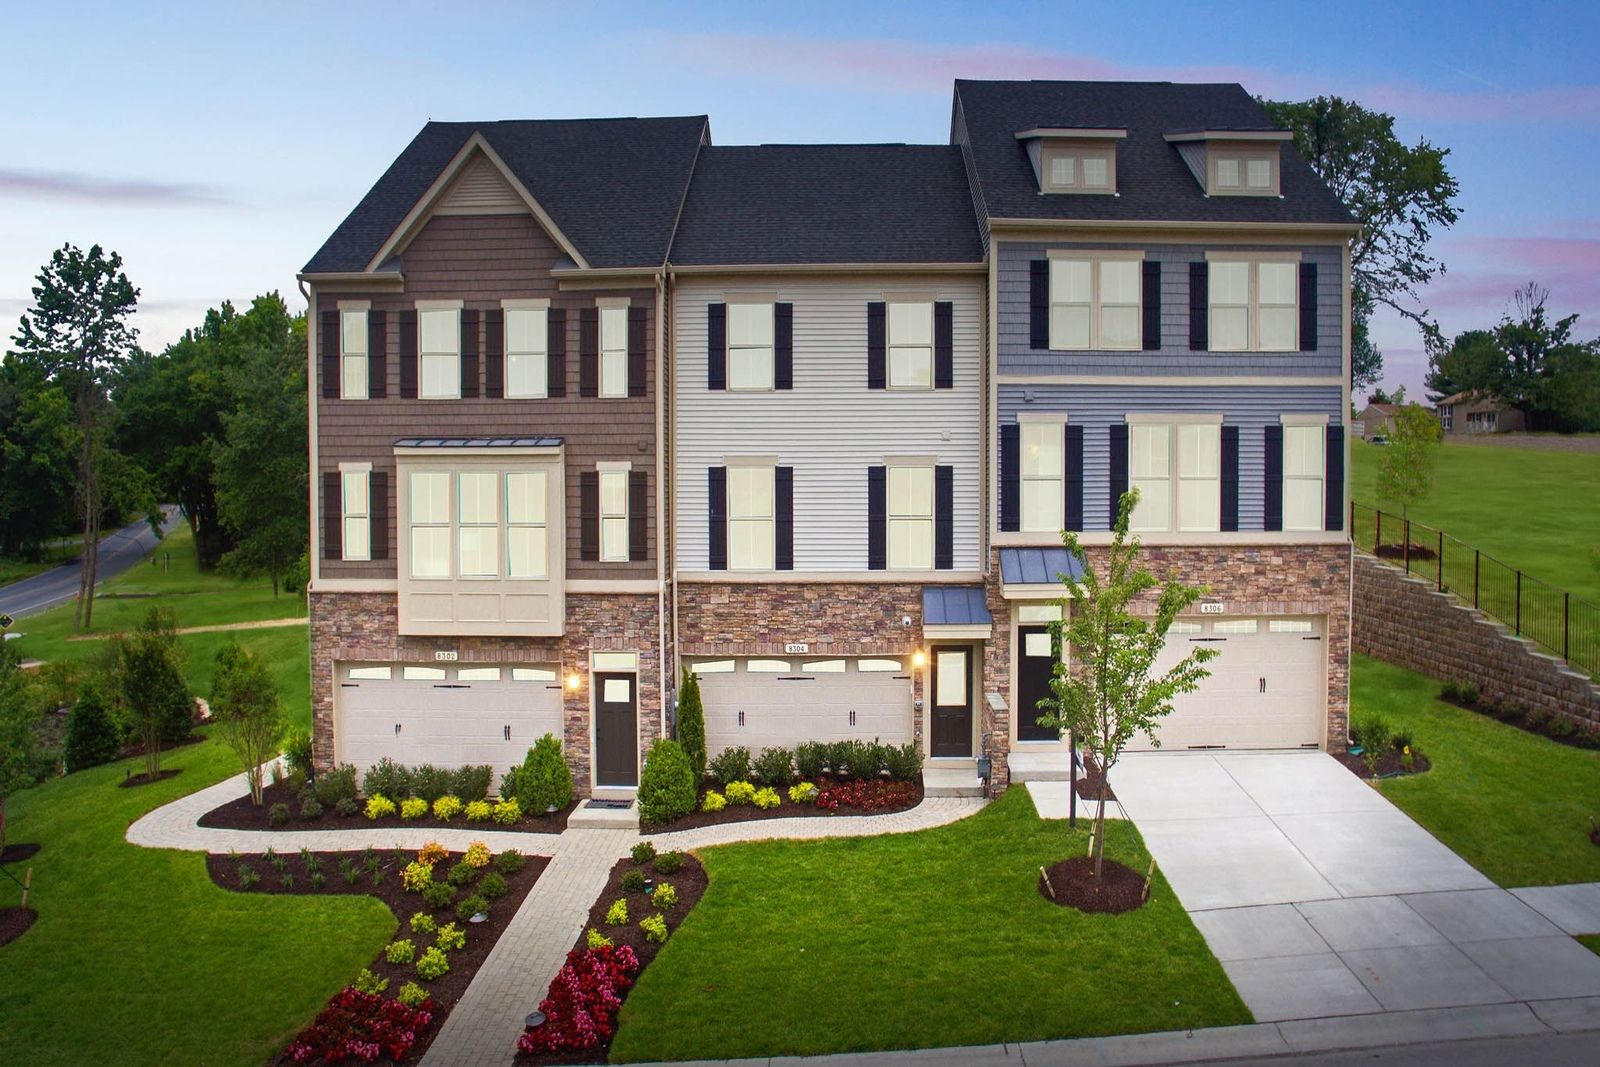 Limited new homesites are available each month